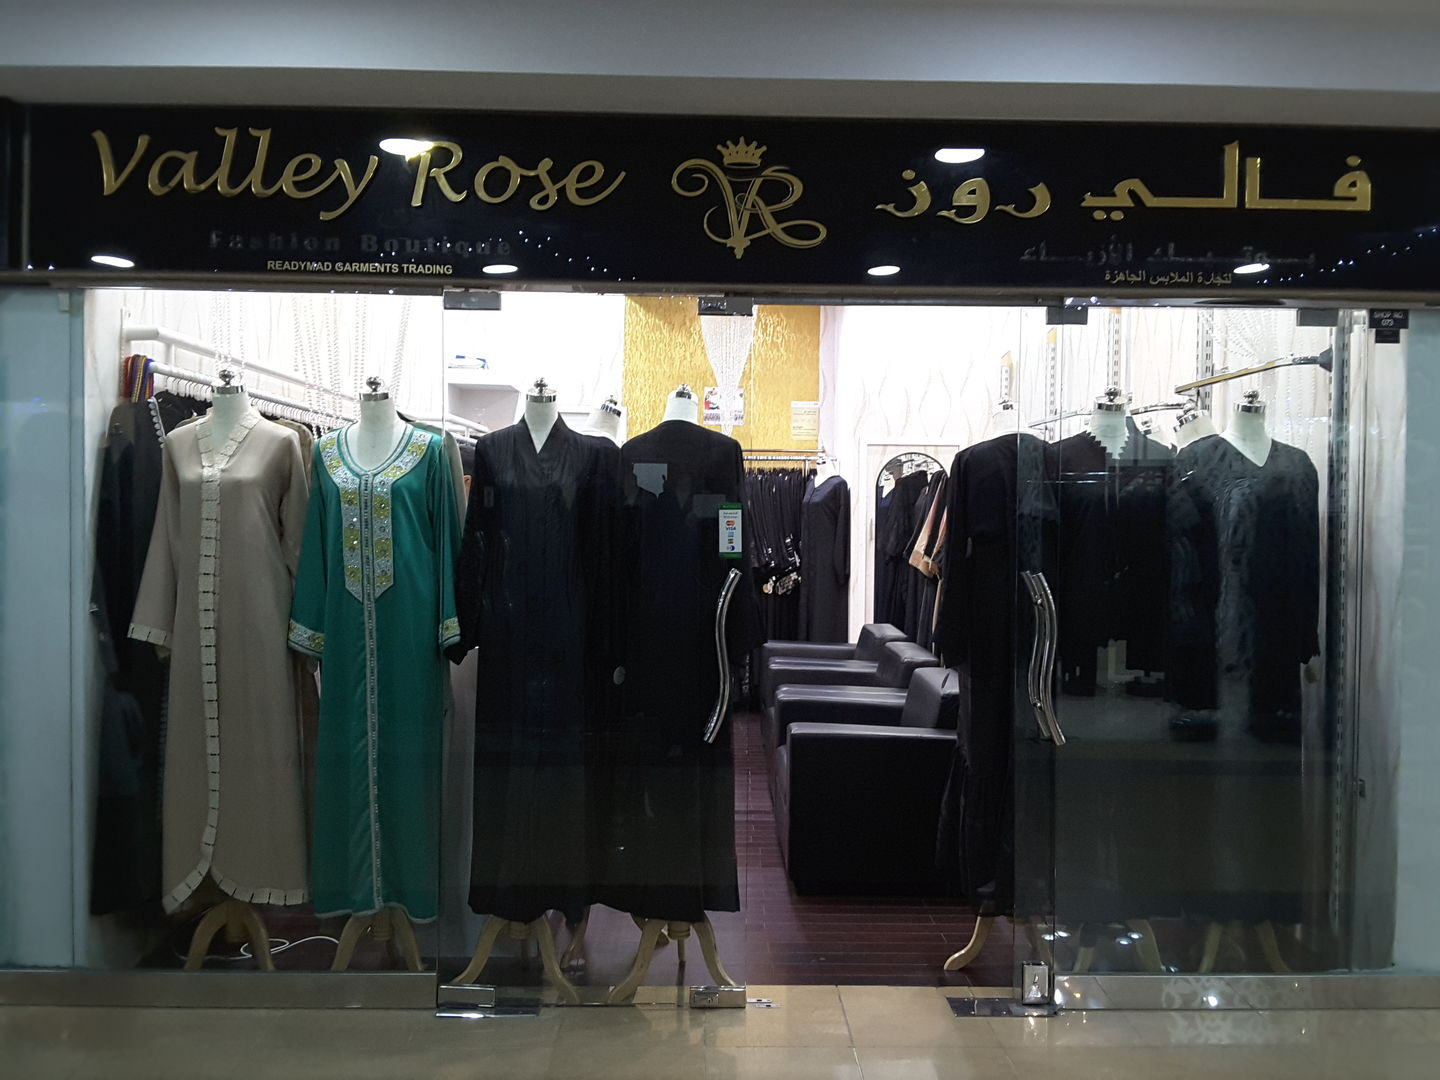 HiDubai-business-valley-rose-readymade-garments-and-trading-shopping-apparel-mirdif-dubai-2